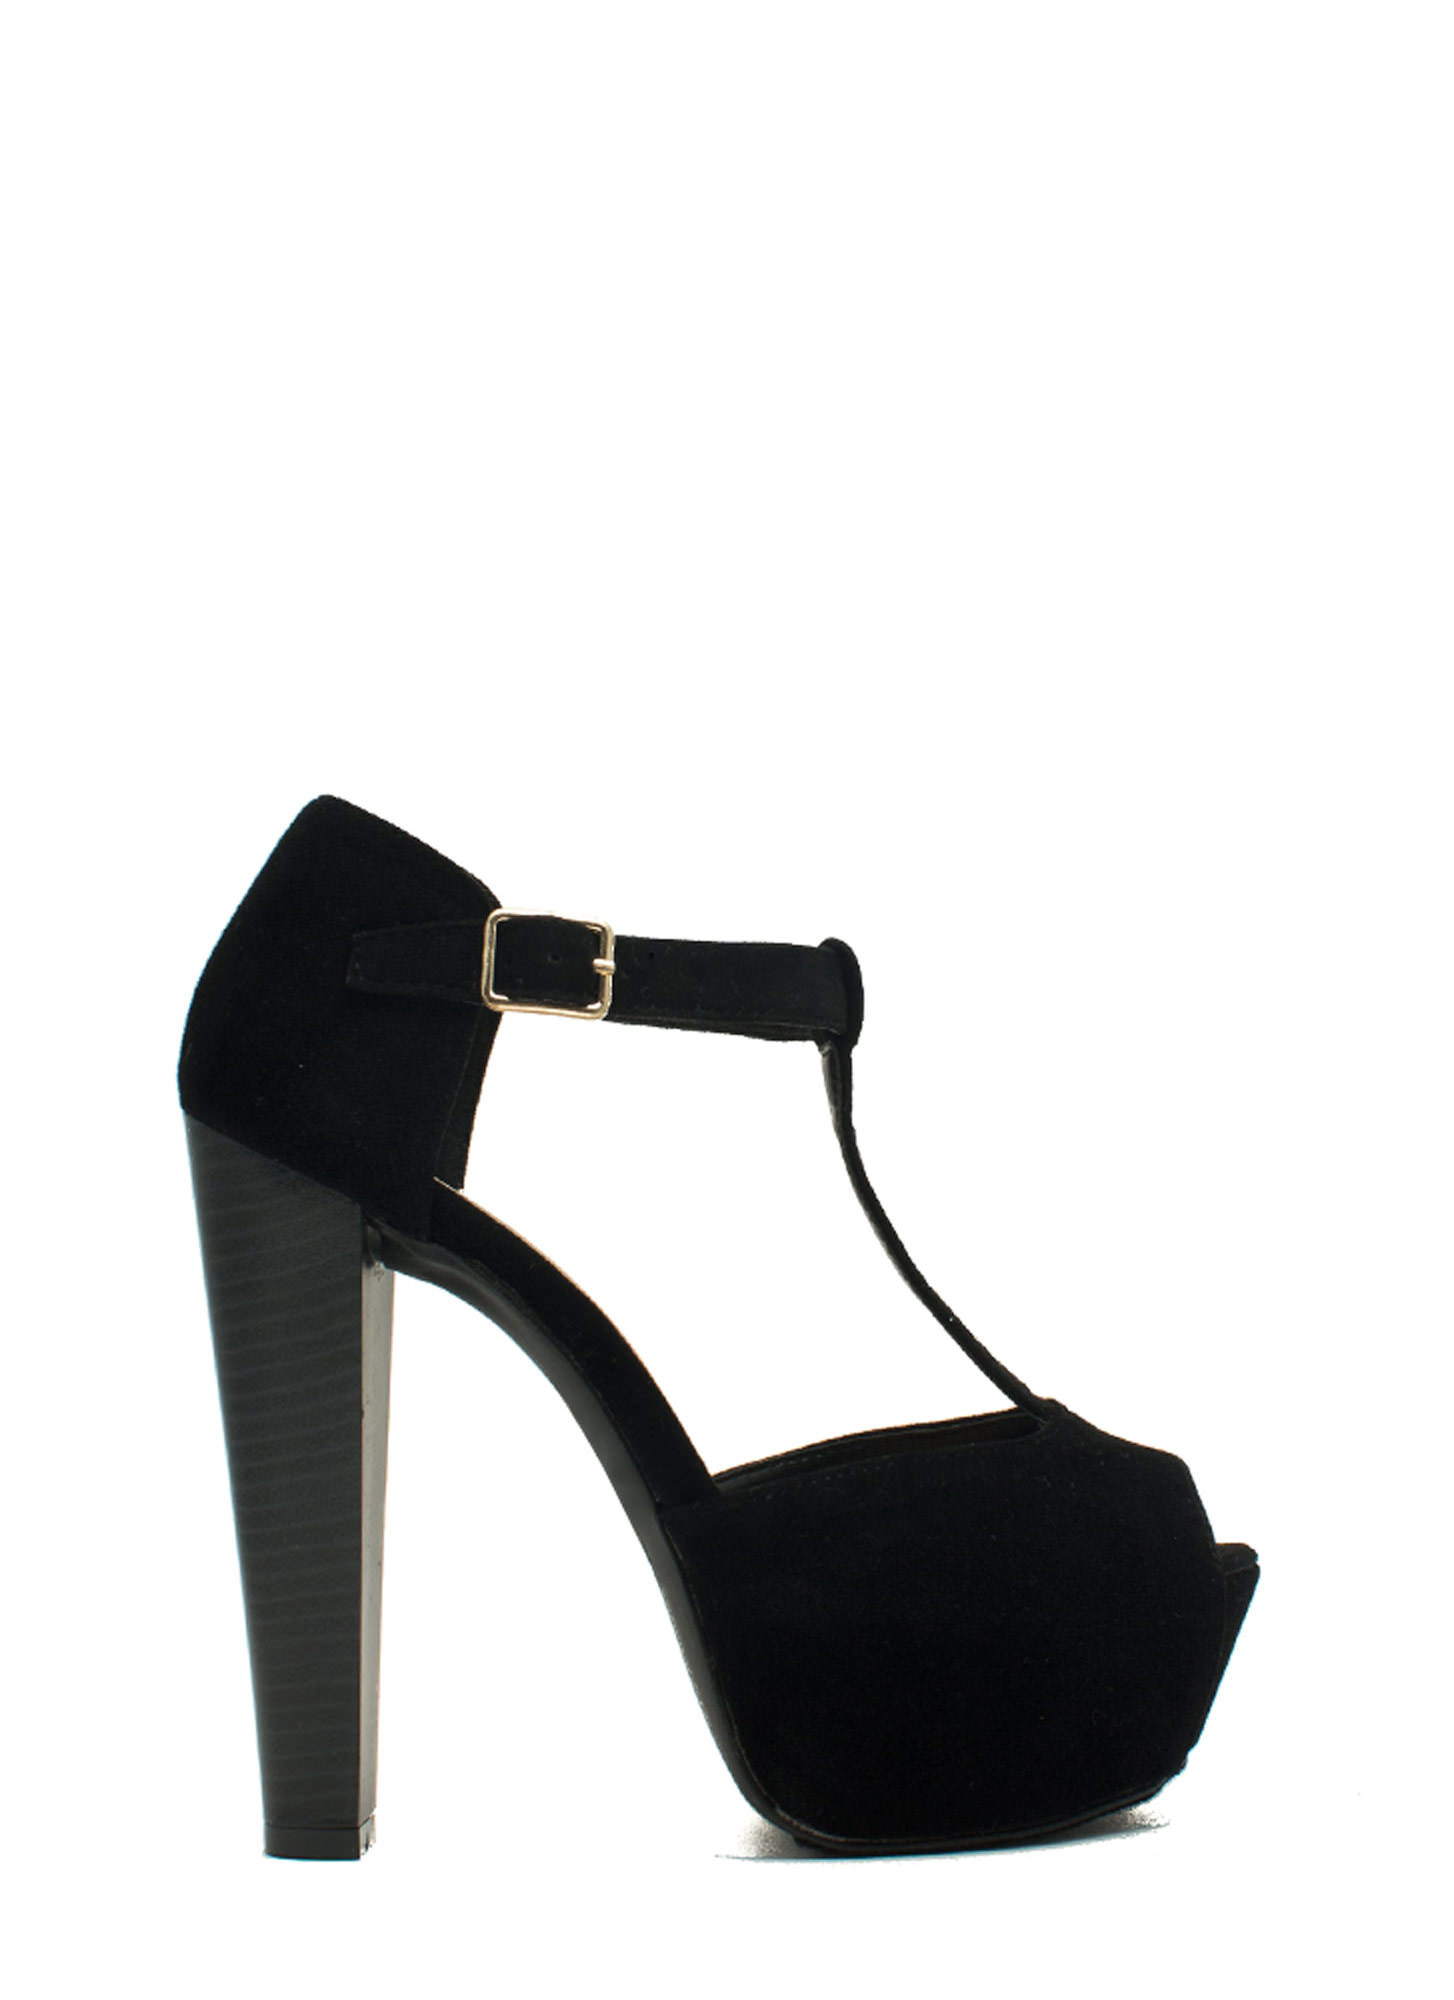 To The T-Strap Chunky Peep-Toe Heels BLACK